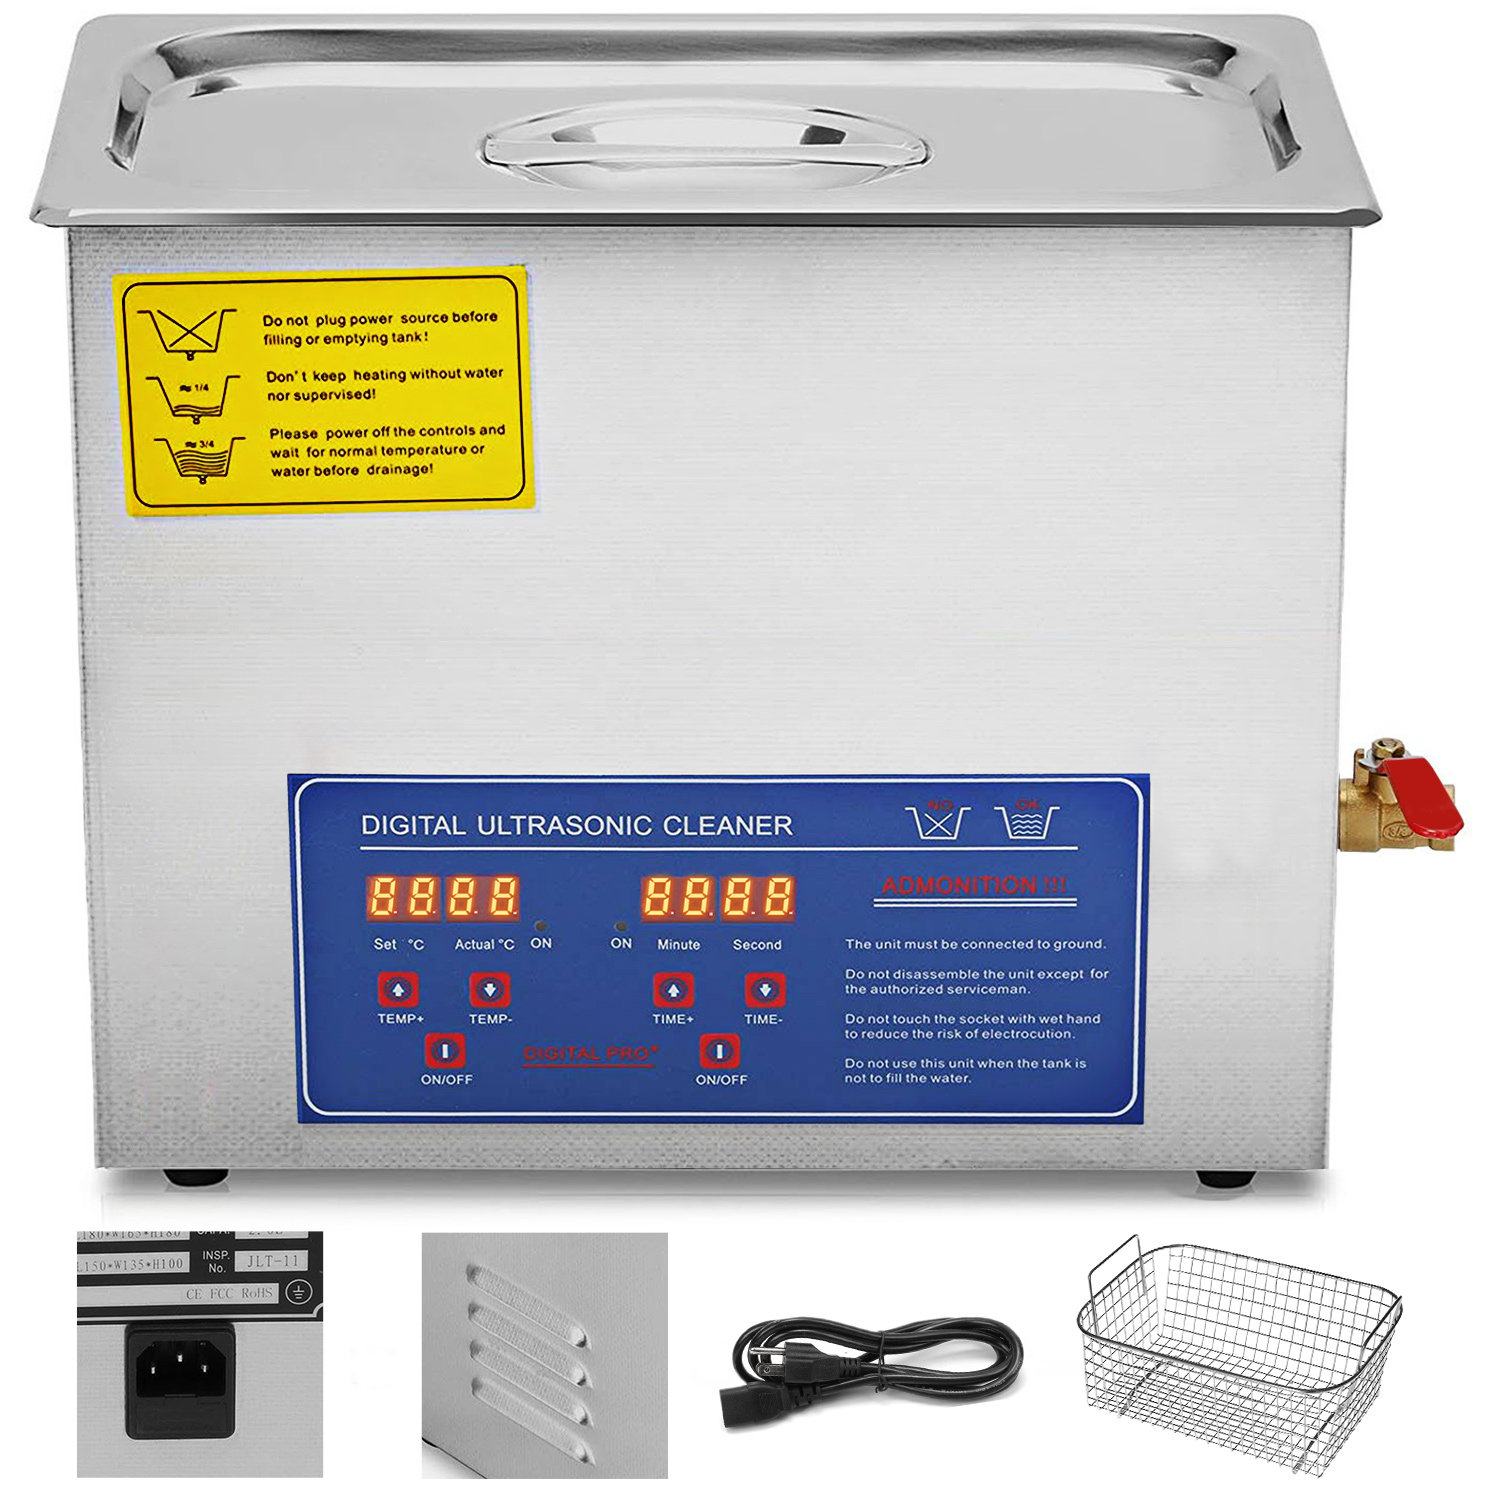 Multi-Ultrasonic-Cleaner-Supplies-Jewelry-1-3-2L-3L-6L-10L-15L-22L-30L thumbnail 49